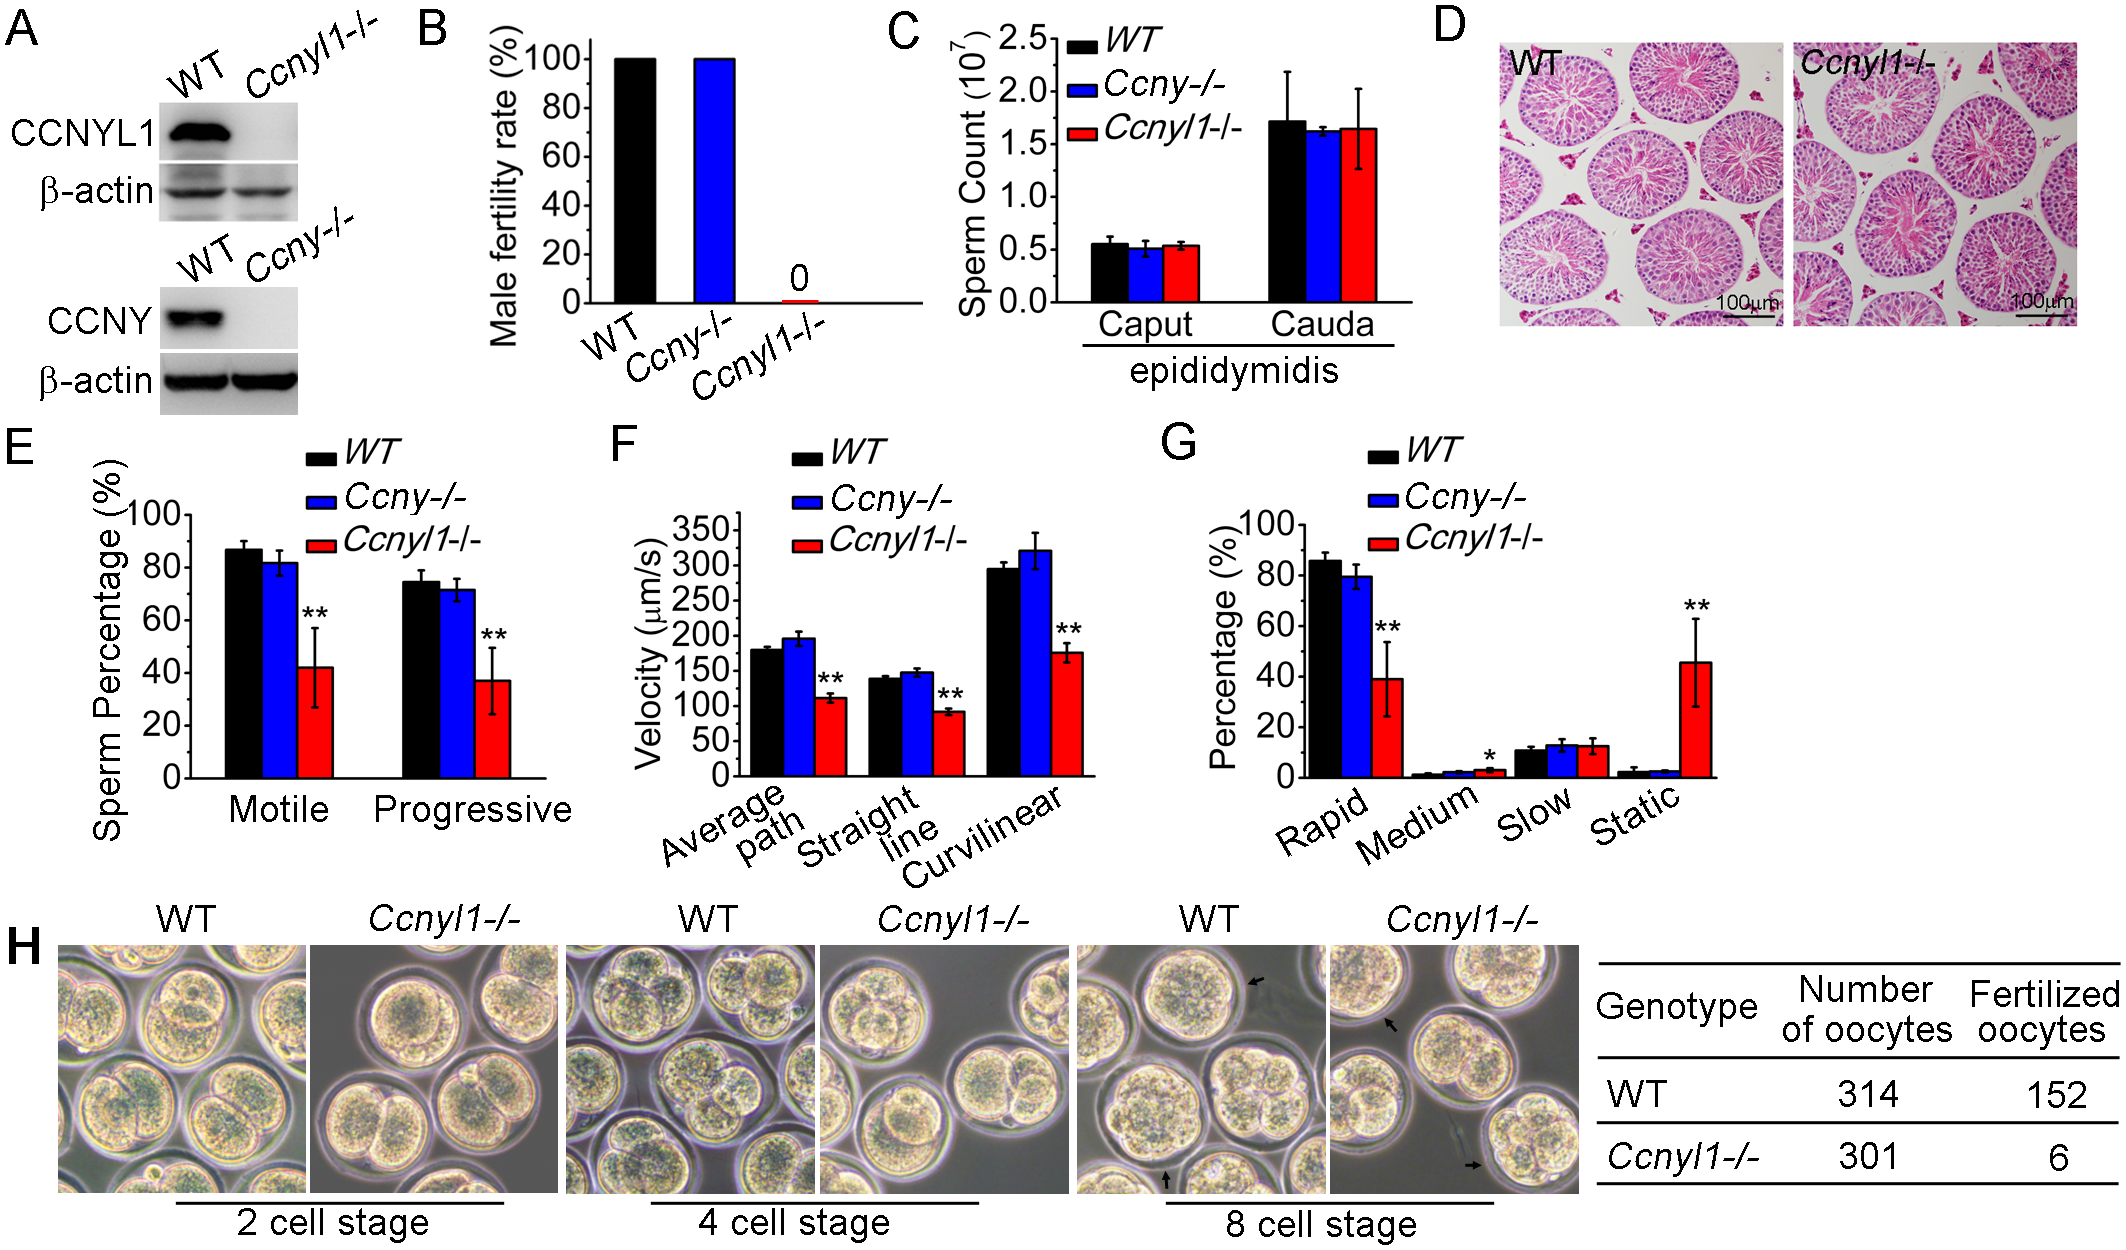 Essential function of CCNYL1 for male fertility and sperm motility.